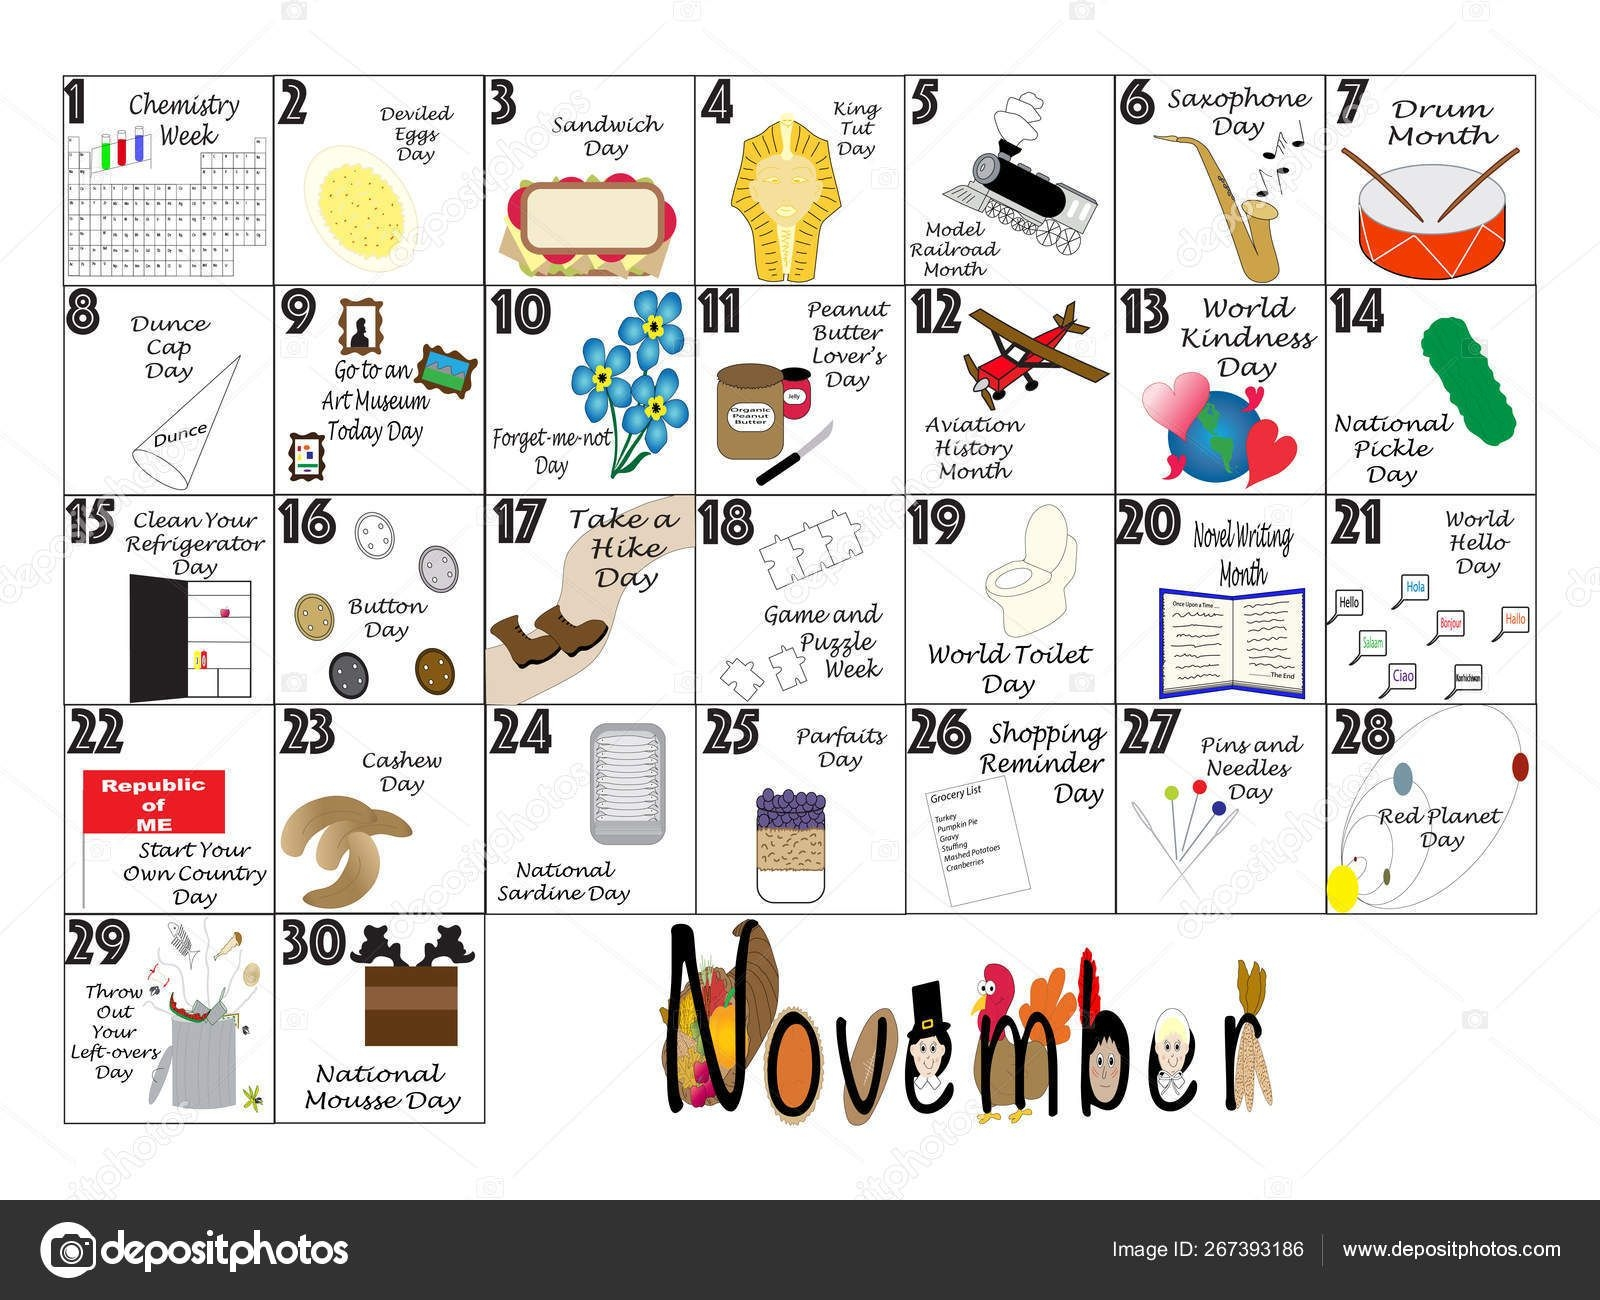 November 2020 Quirky Holidays And Unusual Celebrations Calendar 267393186